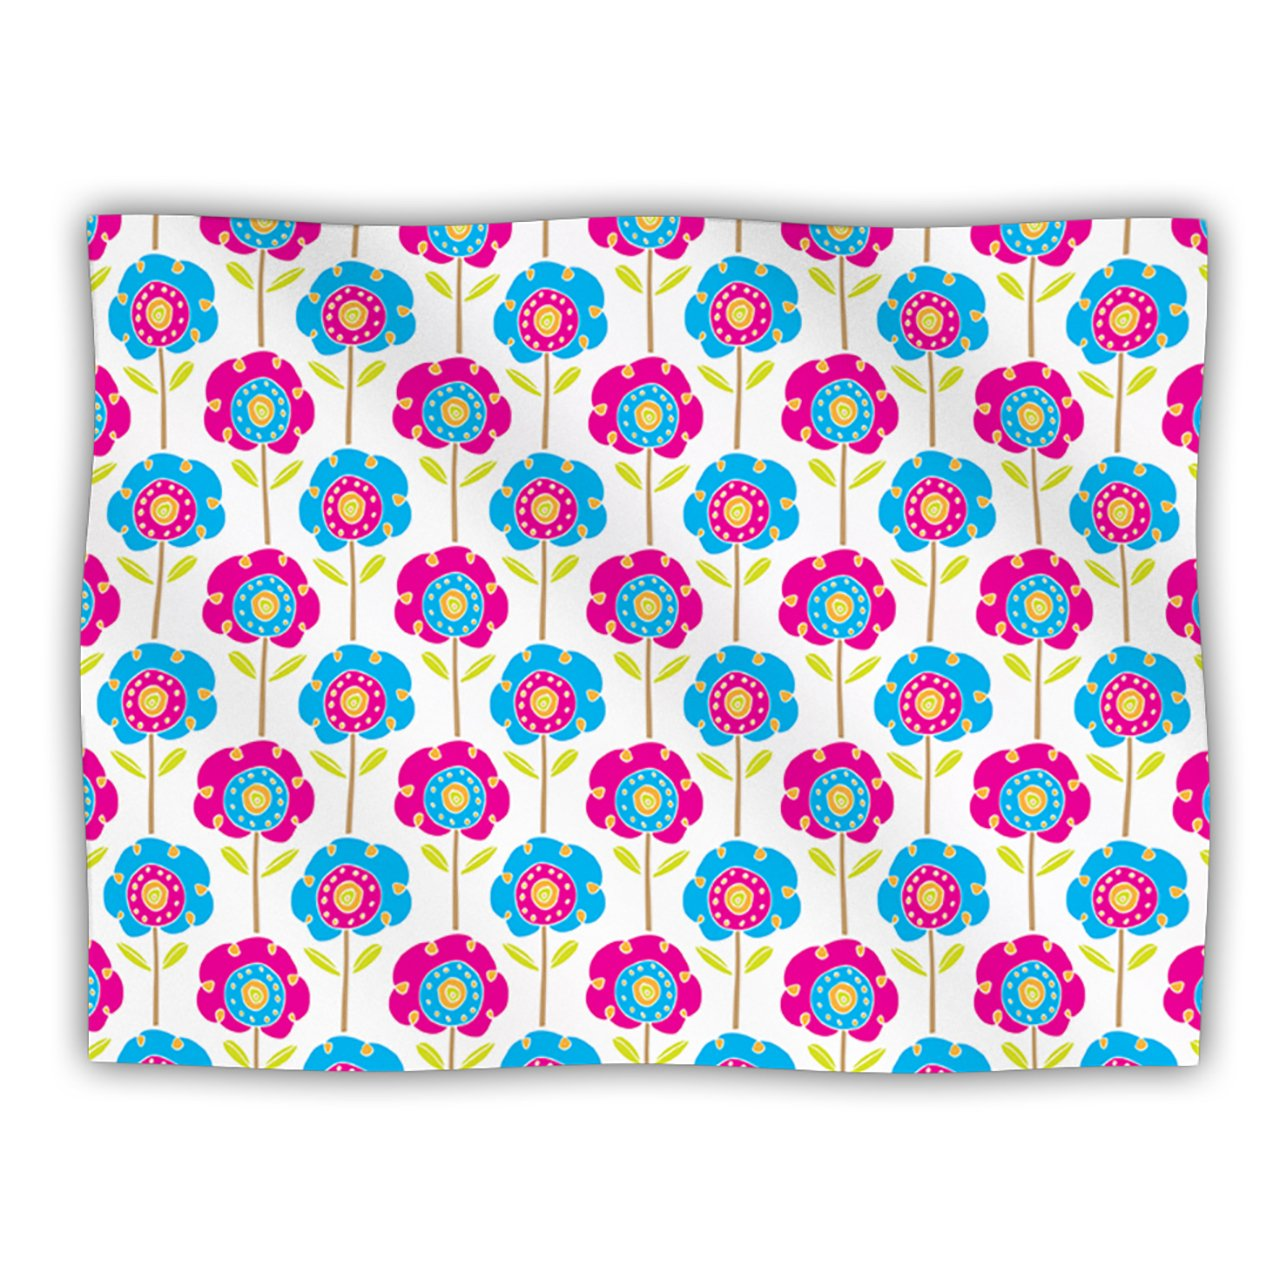 Kess InHouse Apple Kaur Designs Lolly Flowers bluee Pink Pet Dog Blanket, 40 by 30-Inch